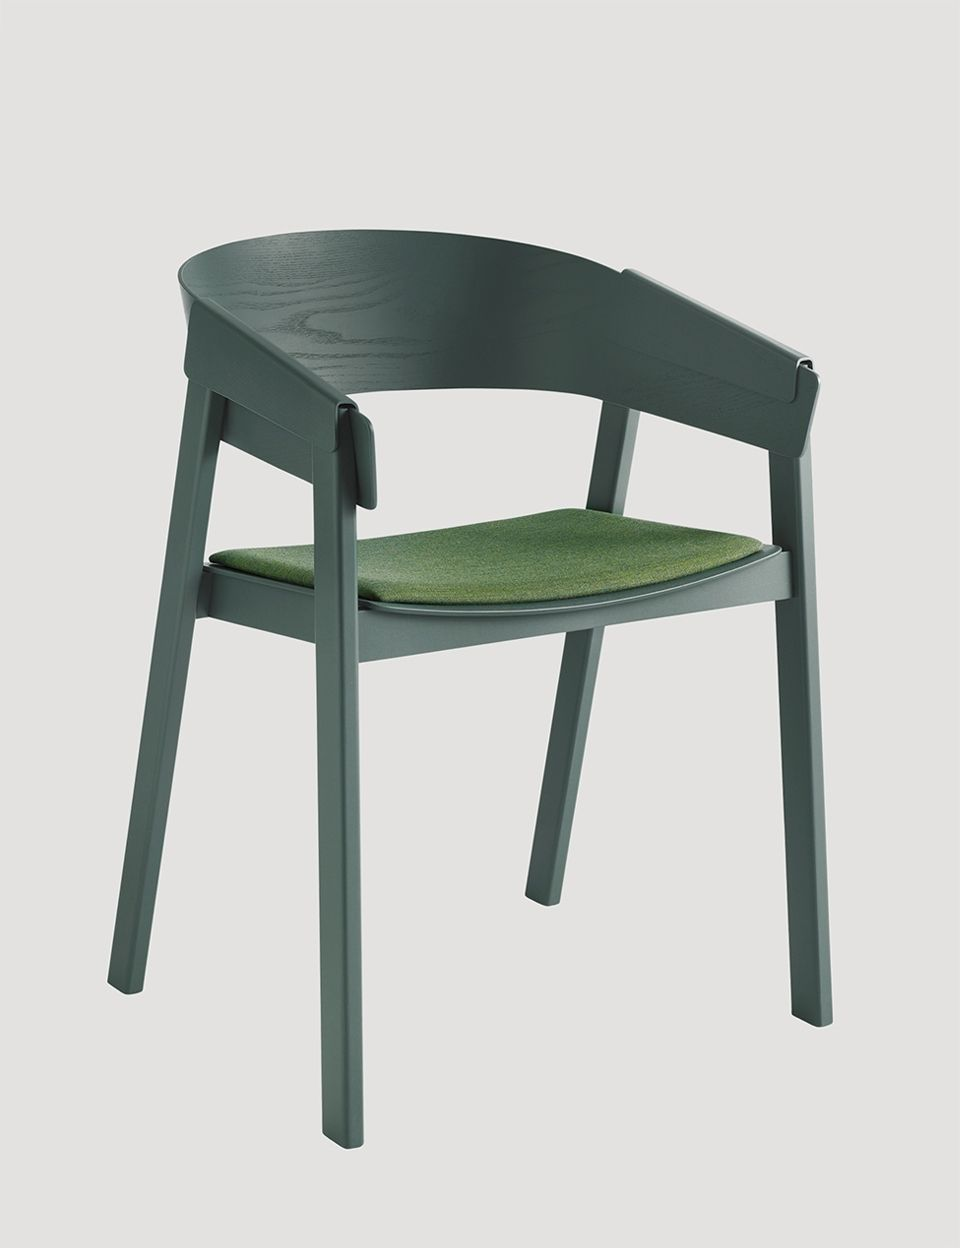 COVER Chair Upholstery In Green / Remix 933, Designed By Thomas Bentzen  #muuto #